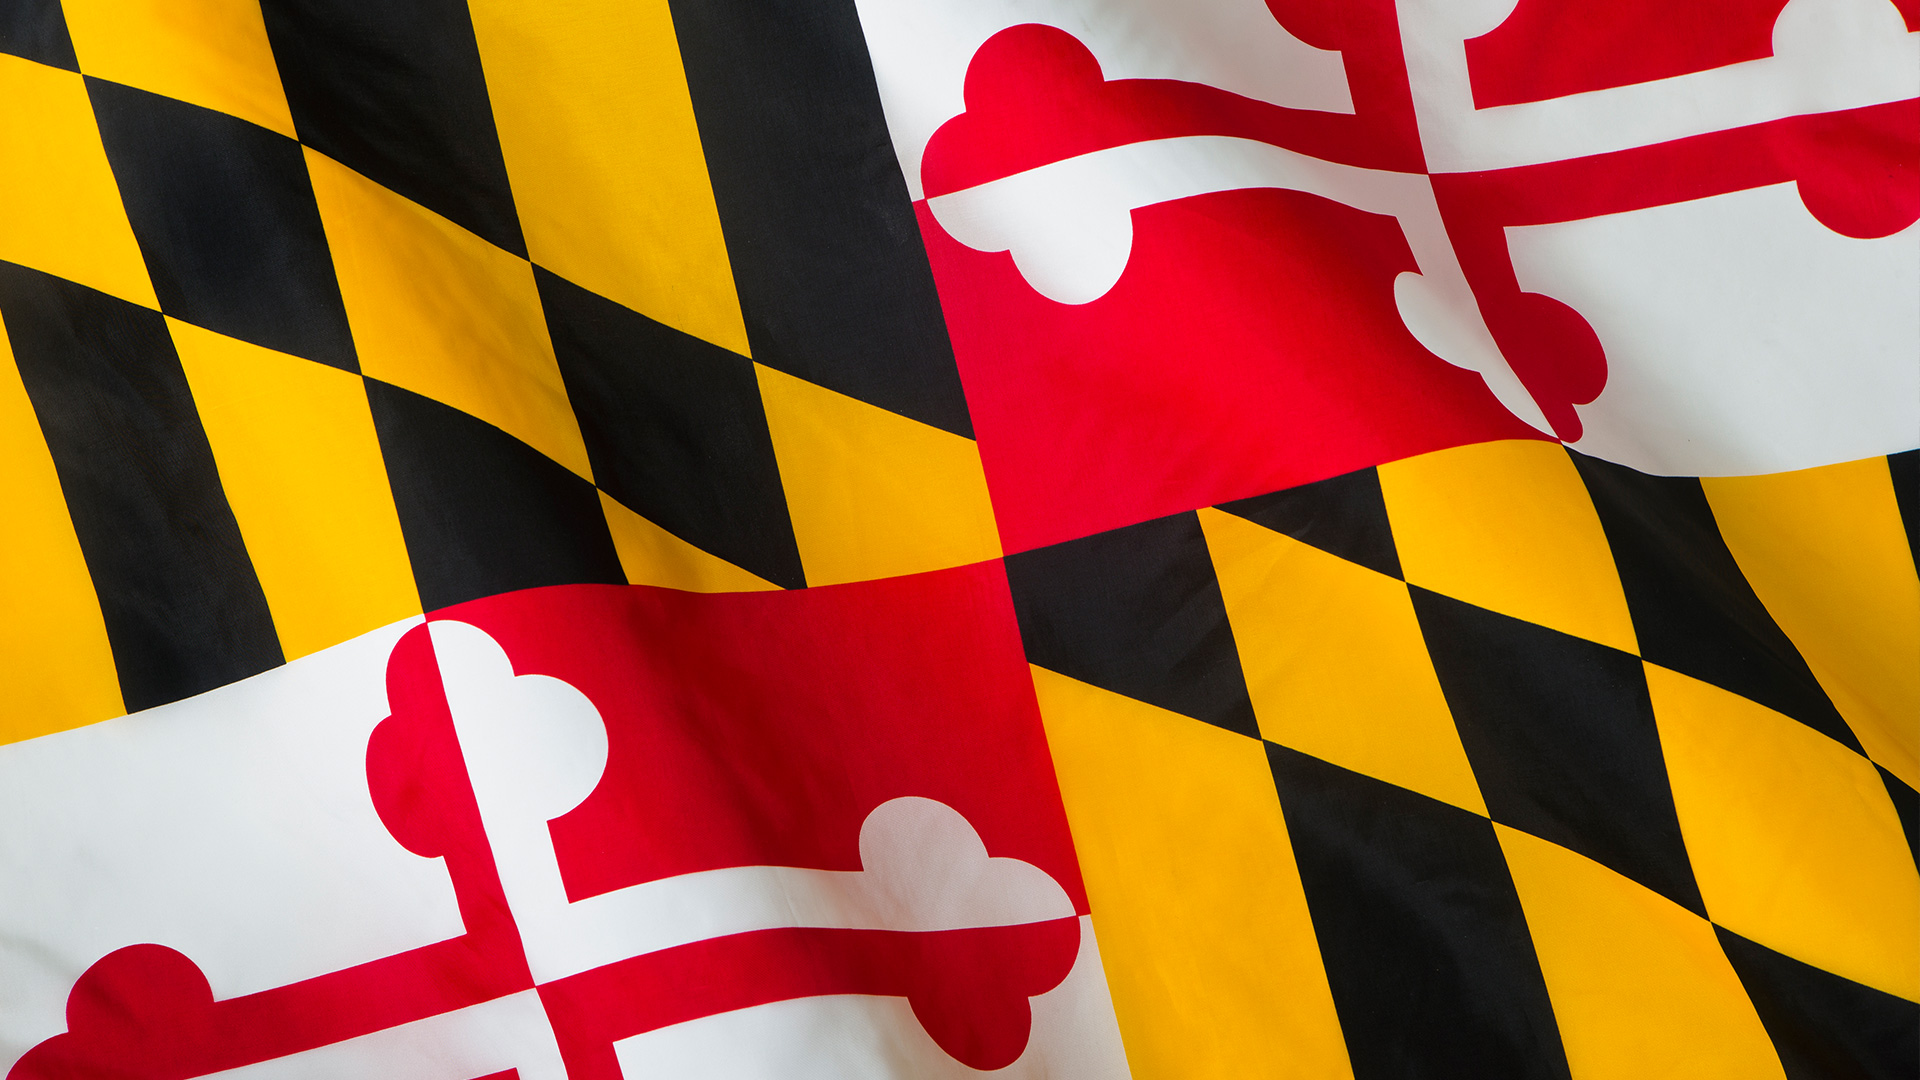 University of Maryland Strategic Partnership Advances Interdisciplinary Research